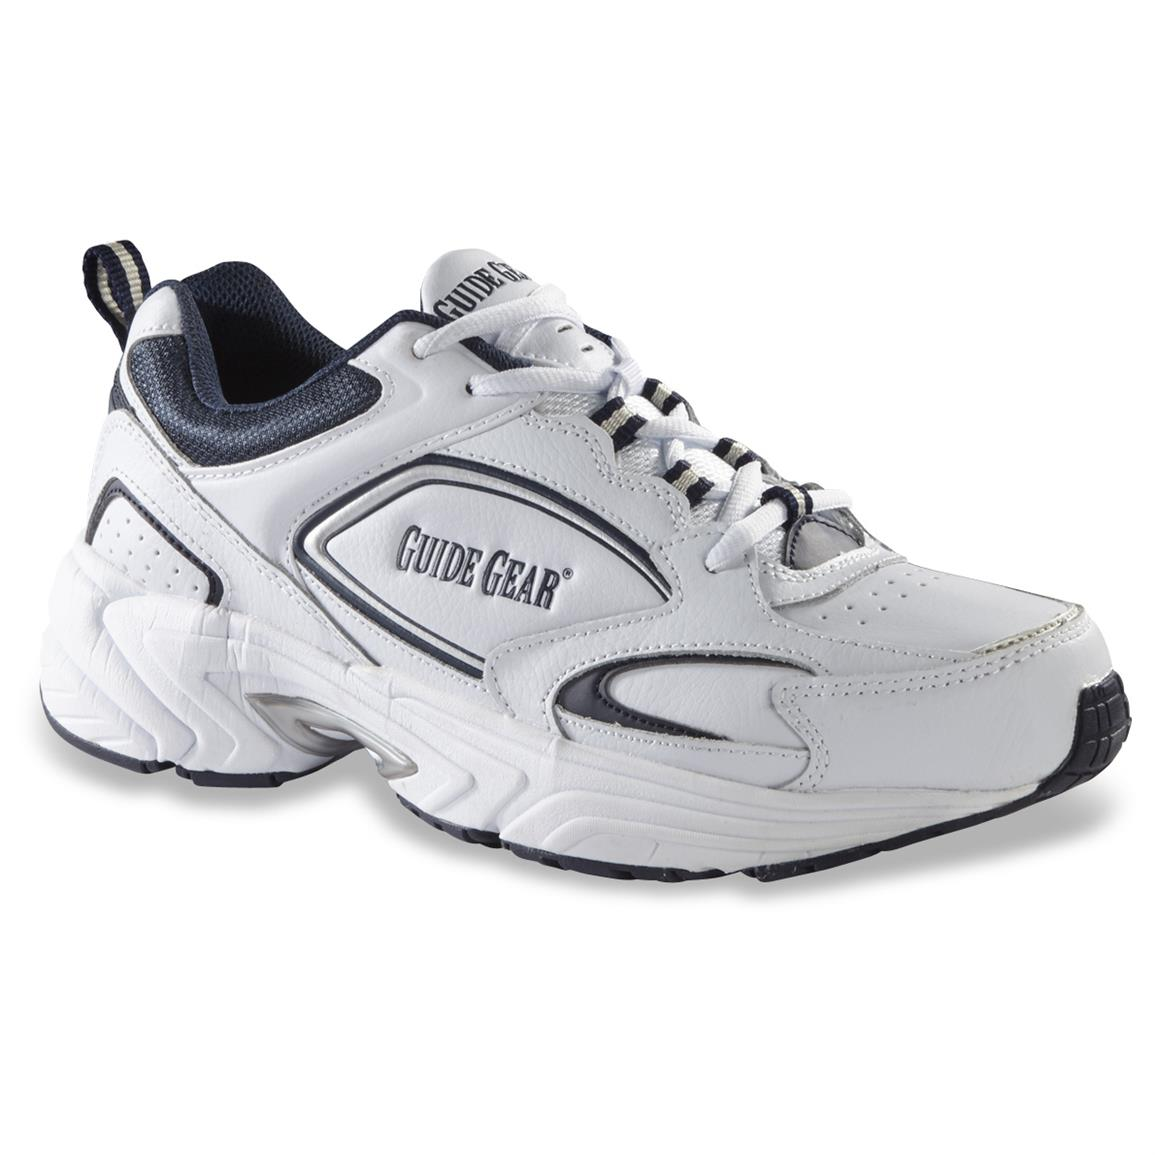 Guide Gear Men's Lace-Up Walking Shoes, White / Navy